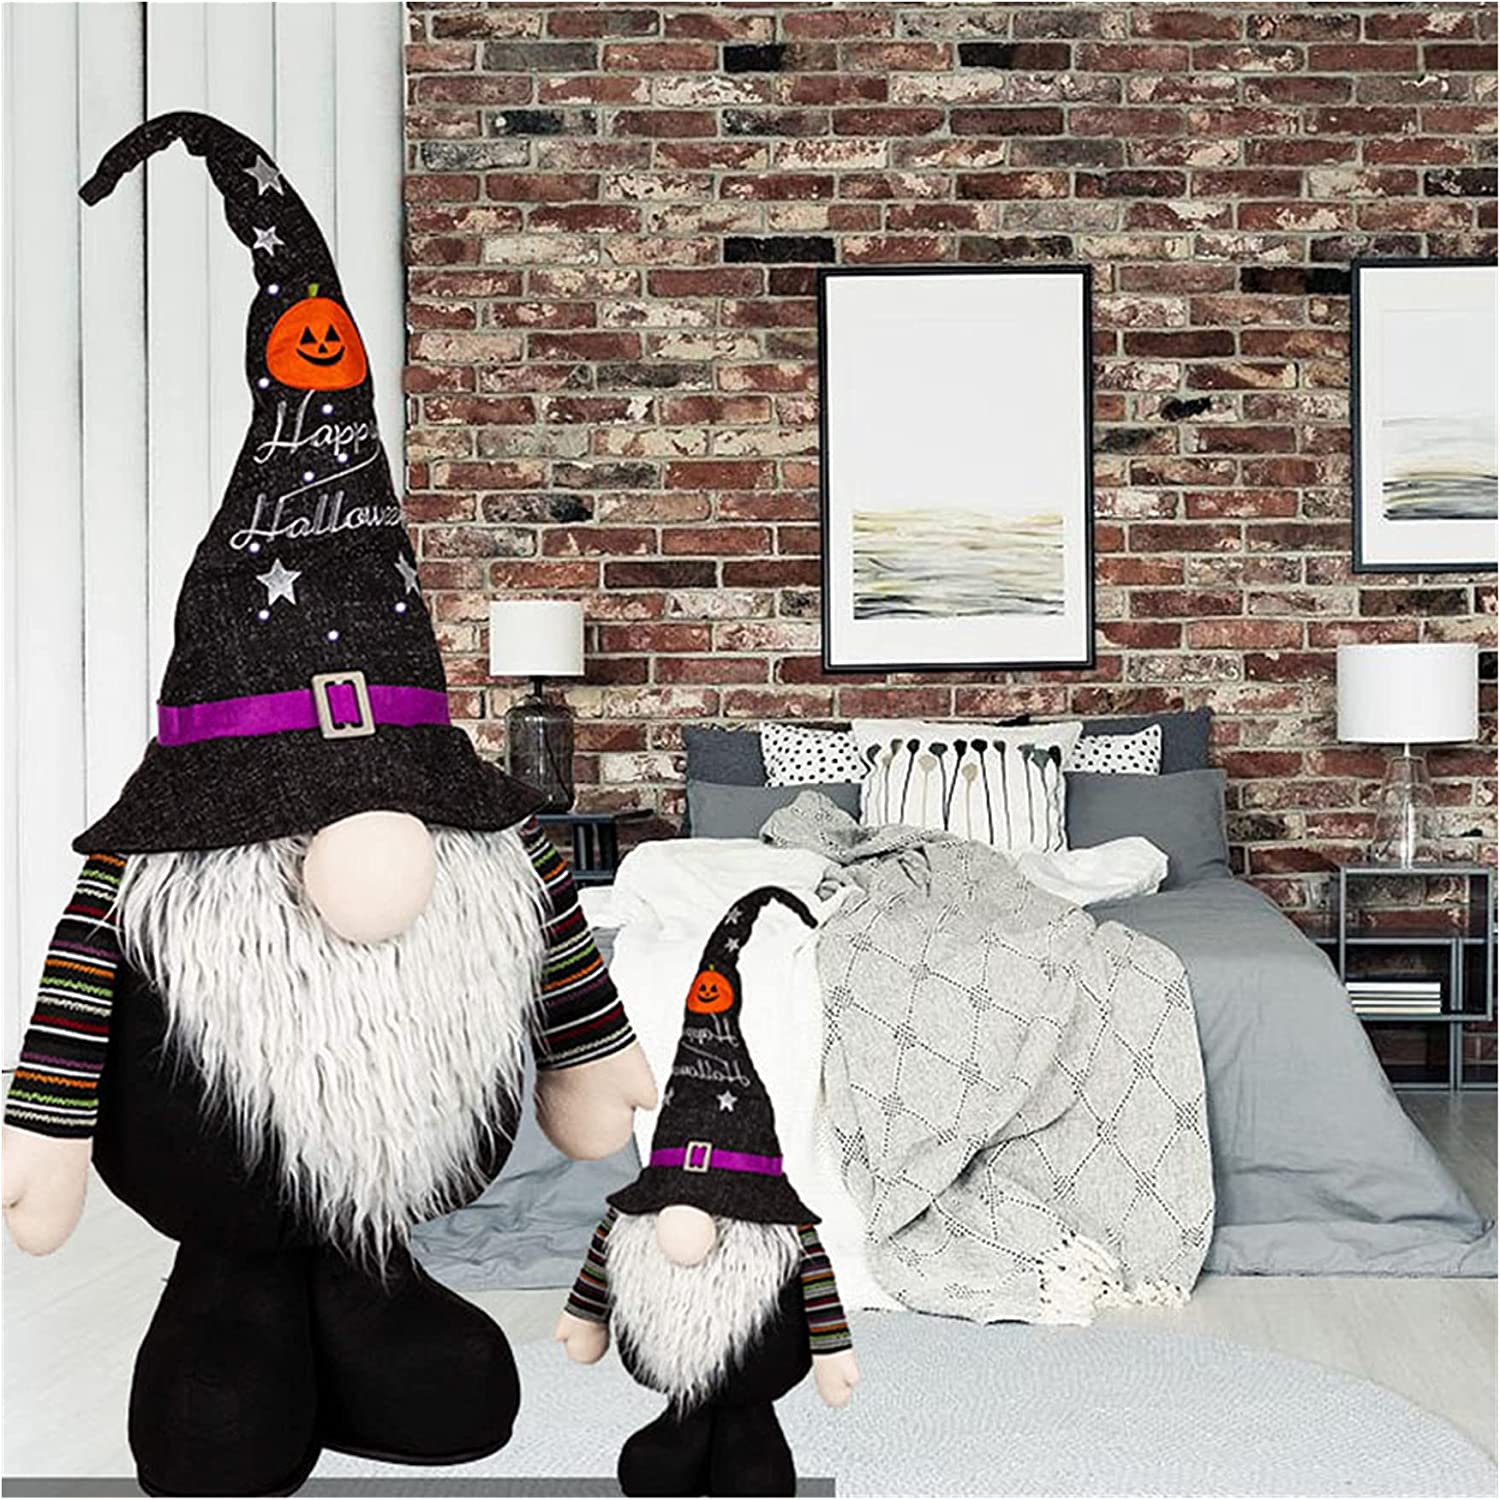 Large Halloween Plush Gnome Decoration Glow Ranking TOP4 Led All items free shipping